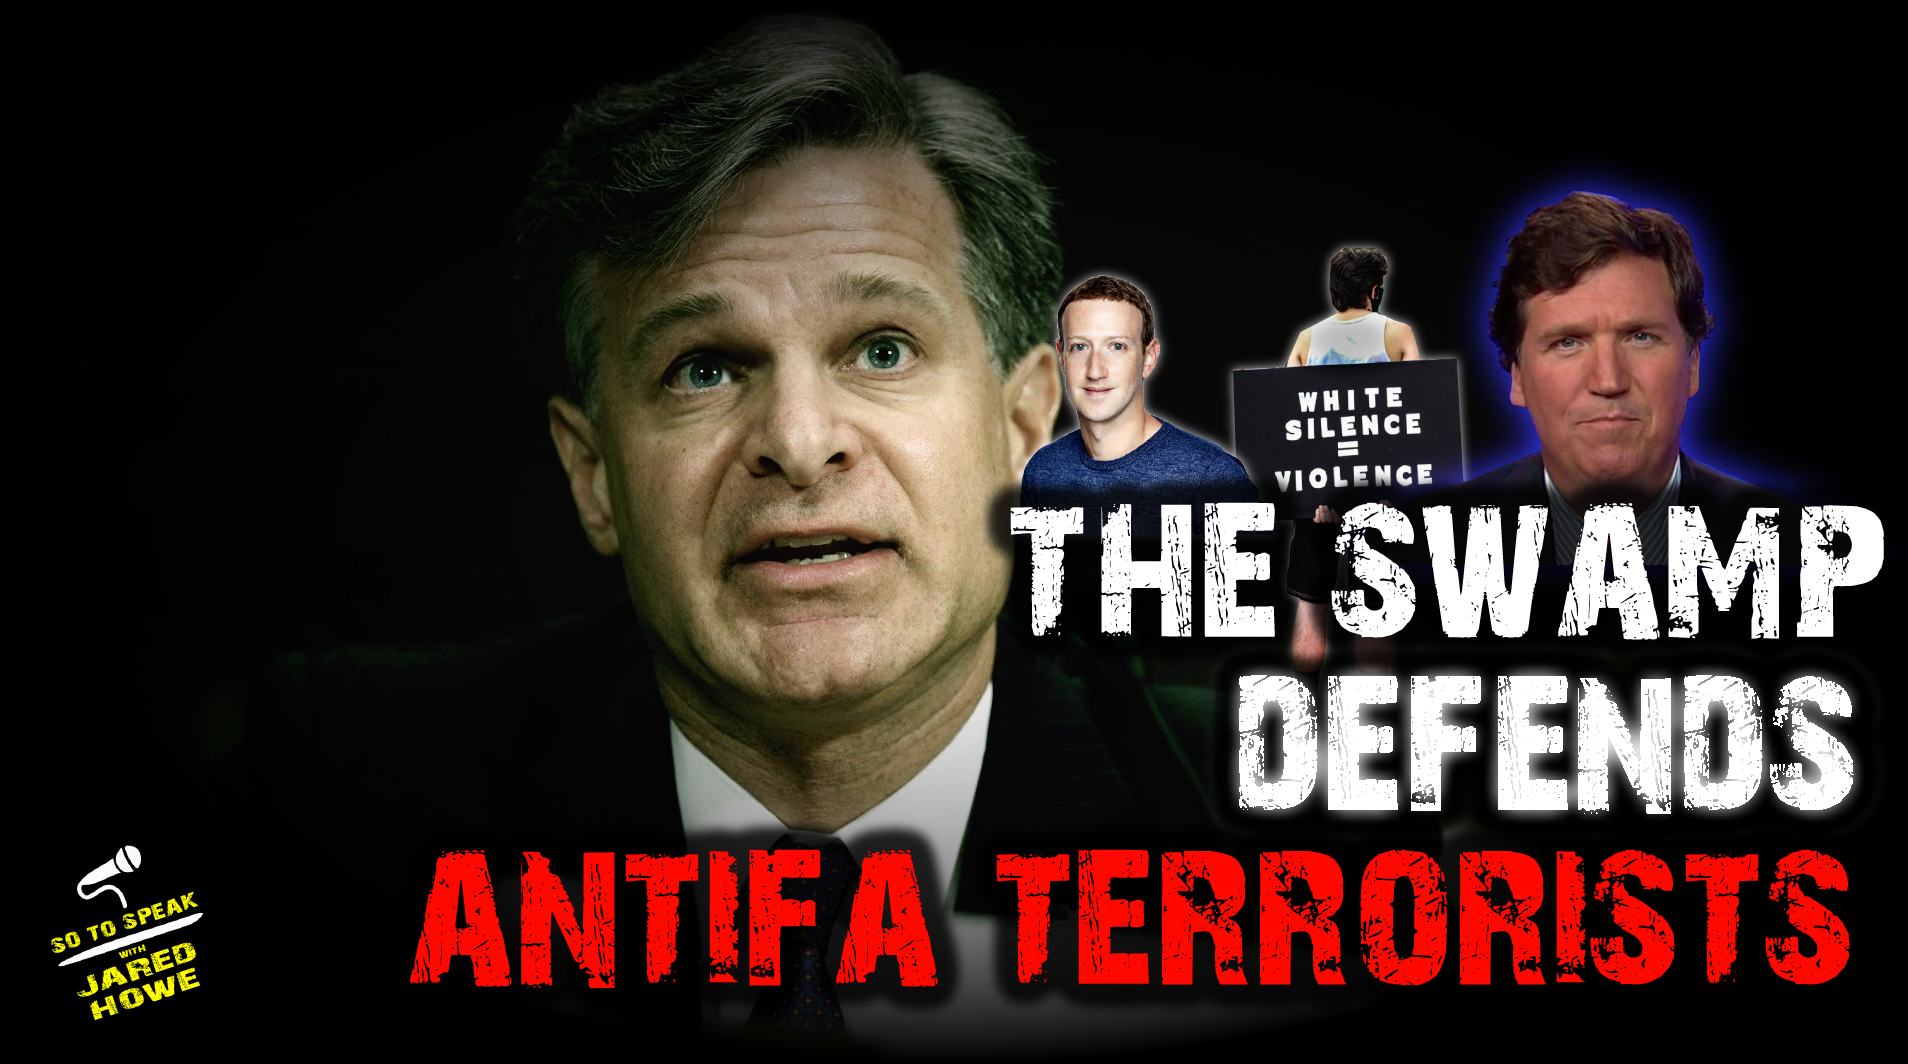 fbi director christopher wray trump crt critical race theory 1776 commission statues tucker carlson facebook antifa blm black lives matter riots arson looting nyt new york times 1619 project